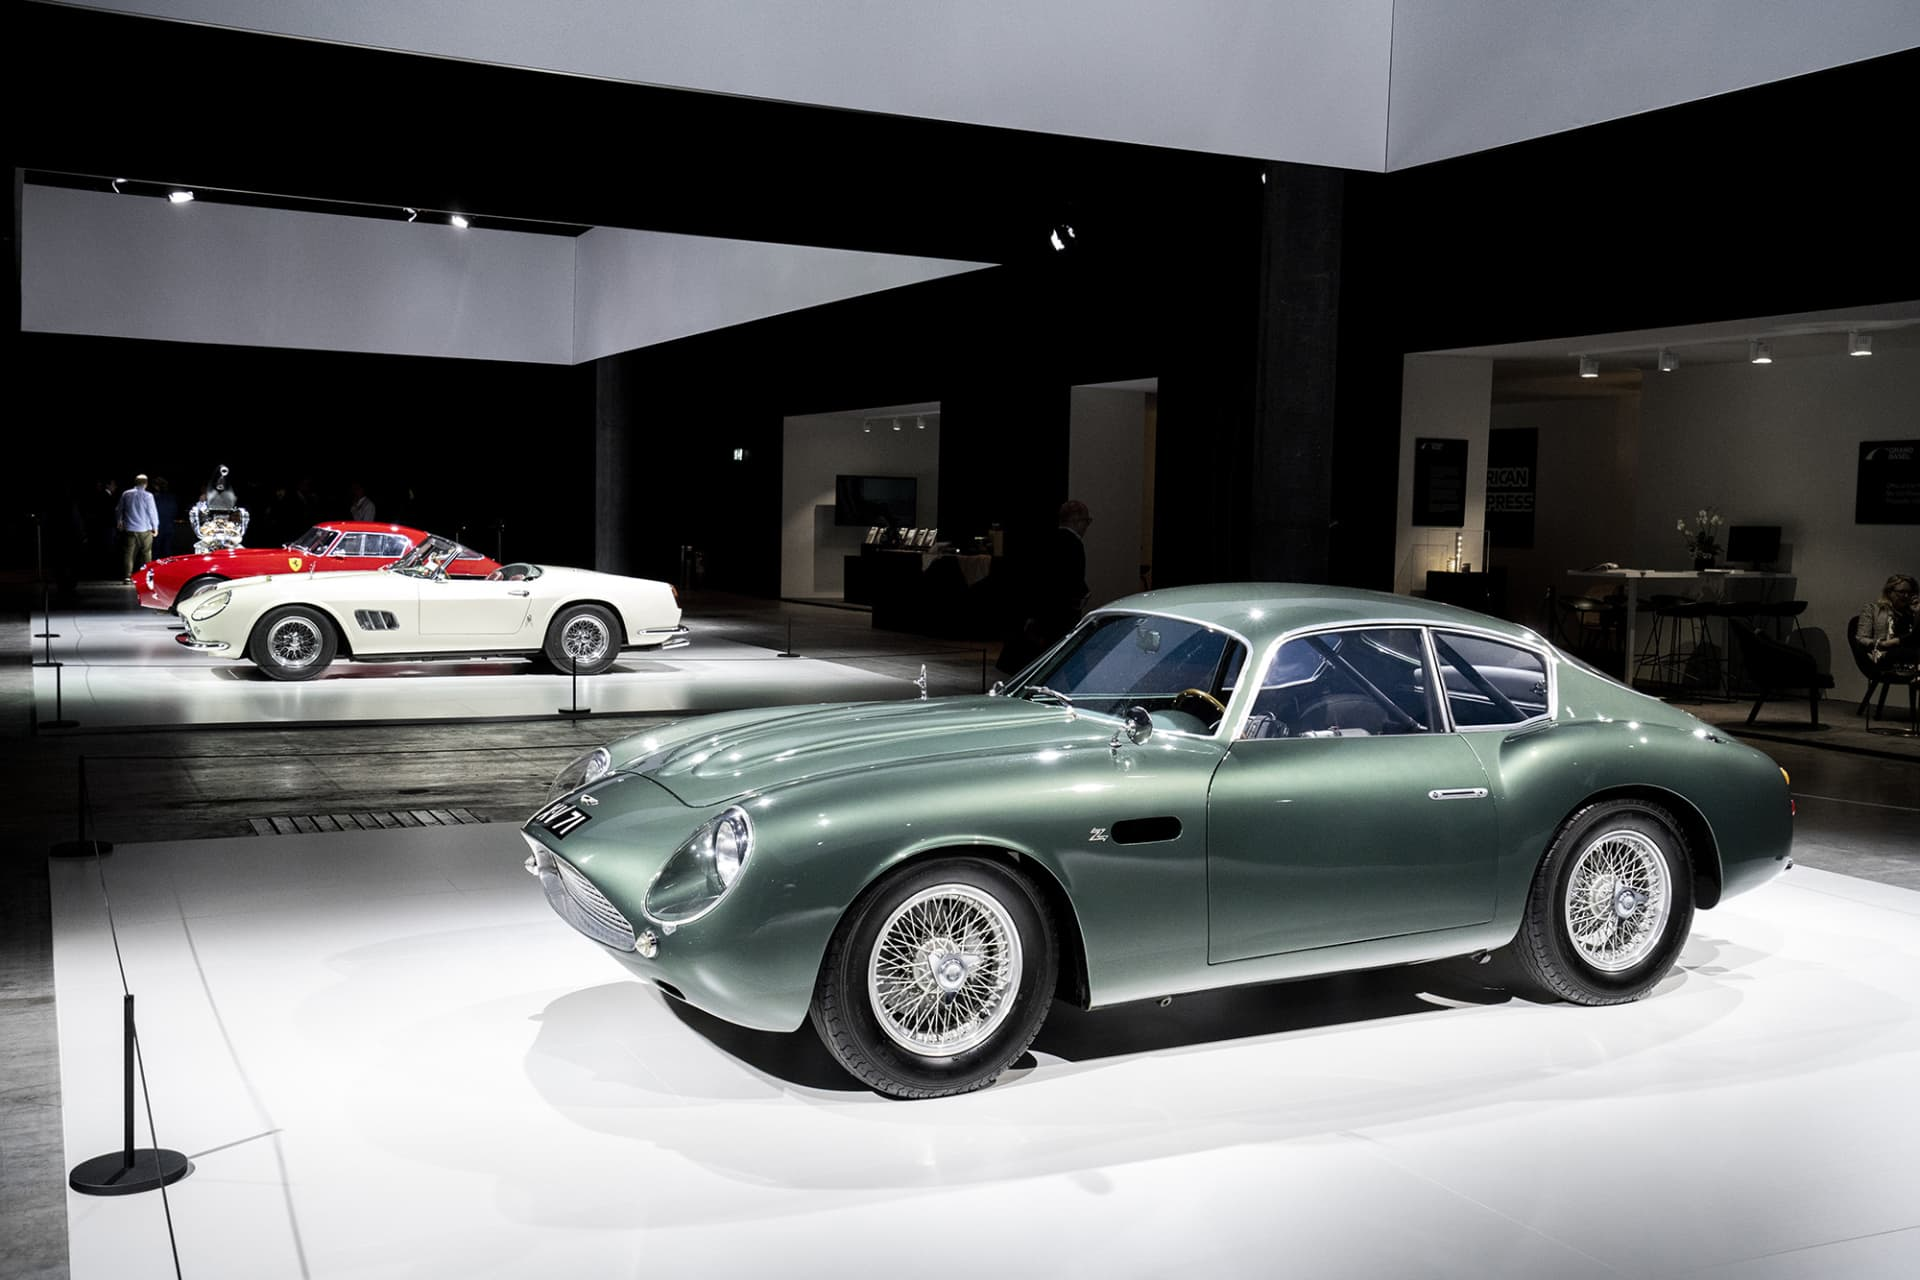 The designer behind the DB4 GT Zagato is Ercole Spada. This was his first creation and probably the most famous. Among Aston Martin collectors there are few models that draw as much attention as this one. The initial reveal took place in connection with the London Motor Show in 1960 in Earl's Court.